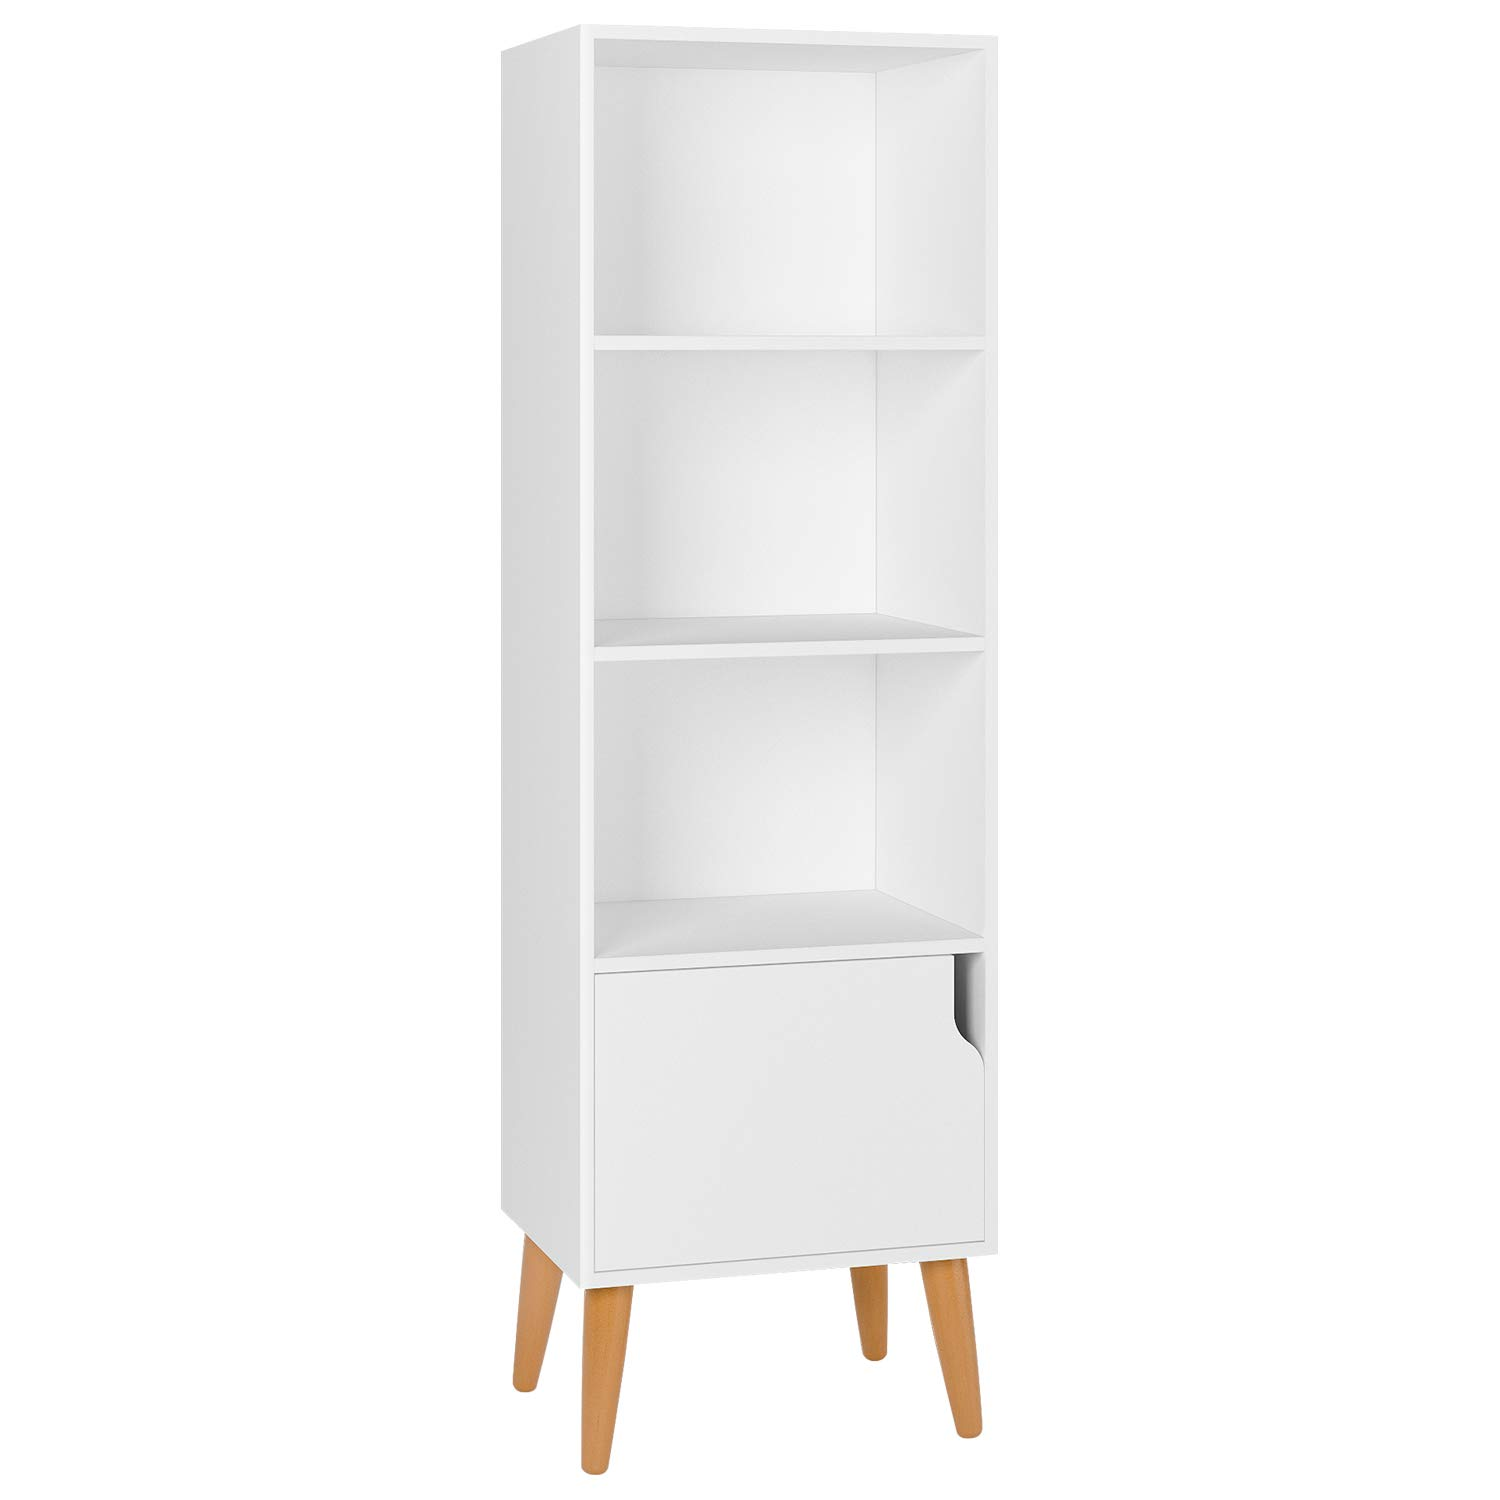 Homfa Wooden Bookcase 4 Cubes Storage Unit Bookshelf Free Standing Shelves with Door Legs 40x30x129.5cm White HF